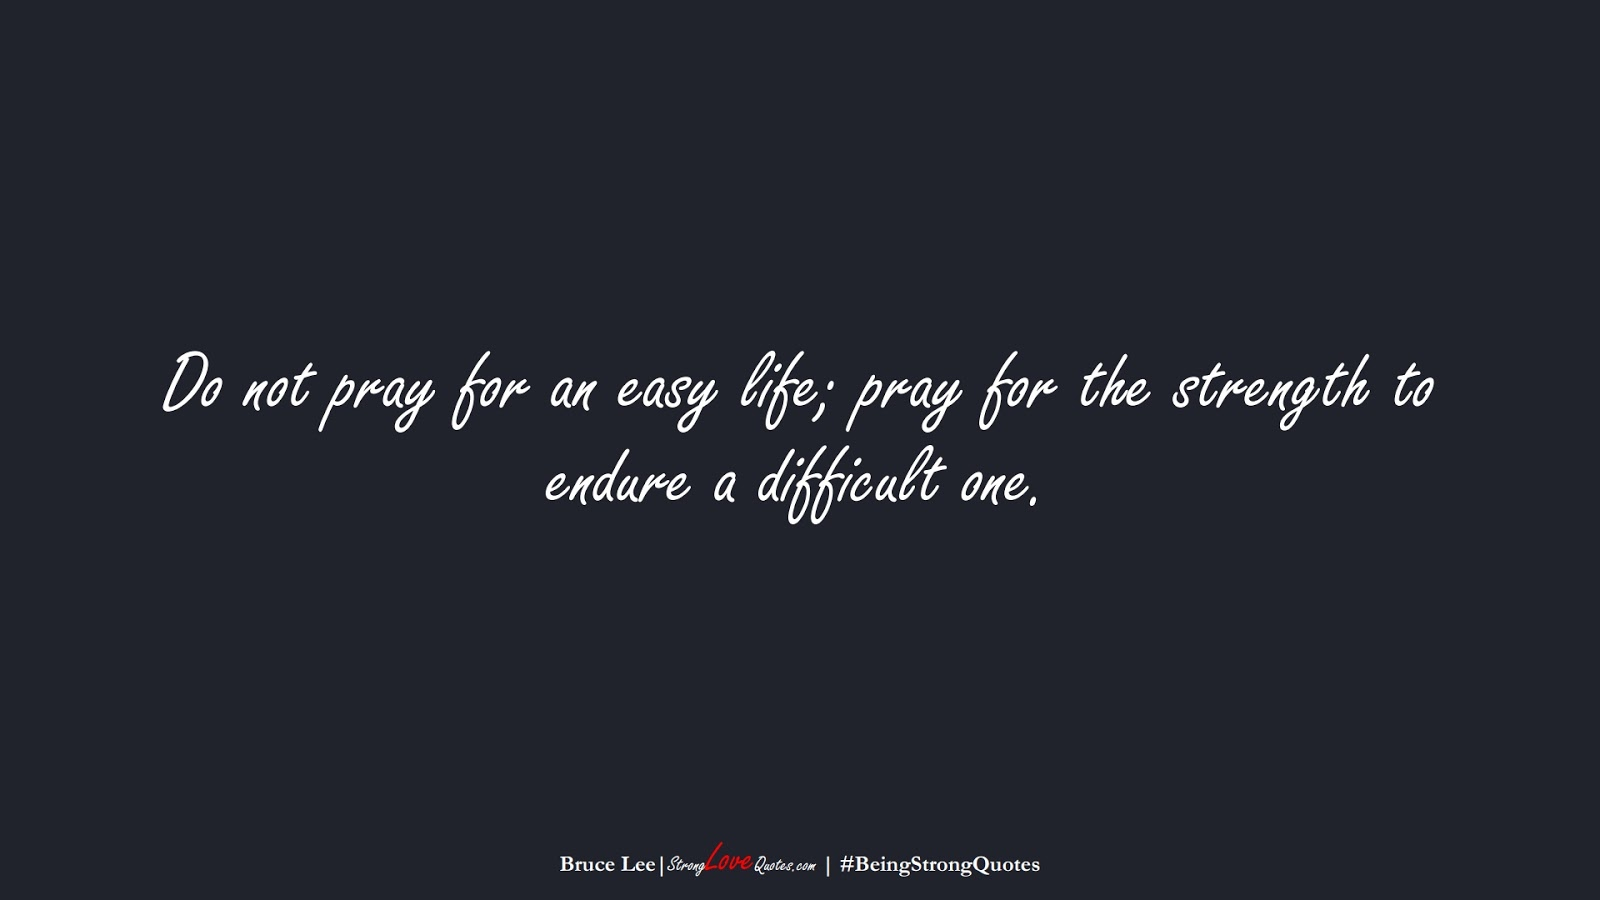 Do not pray for an easy life; pray for the strength to endure a difficult one. (Bruce Lee);  #BeingStrongQuotes